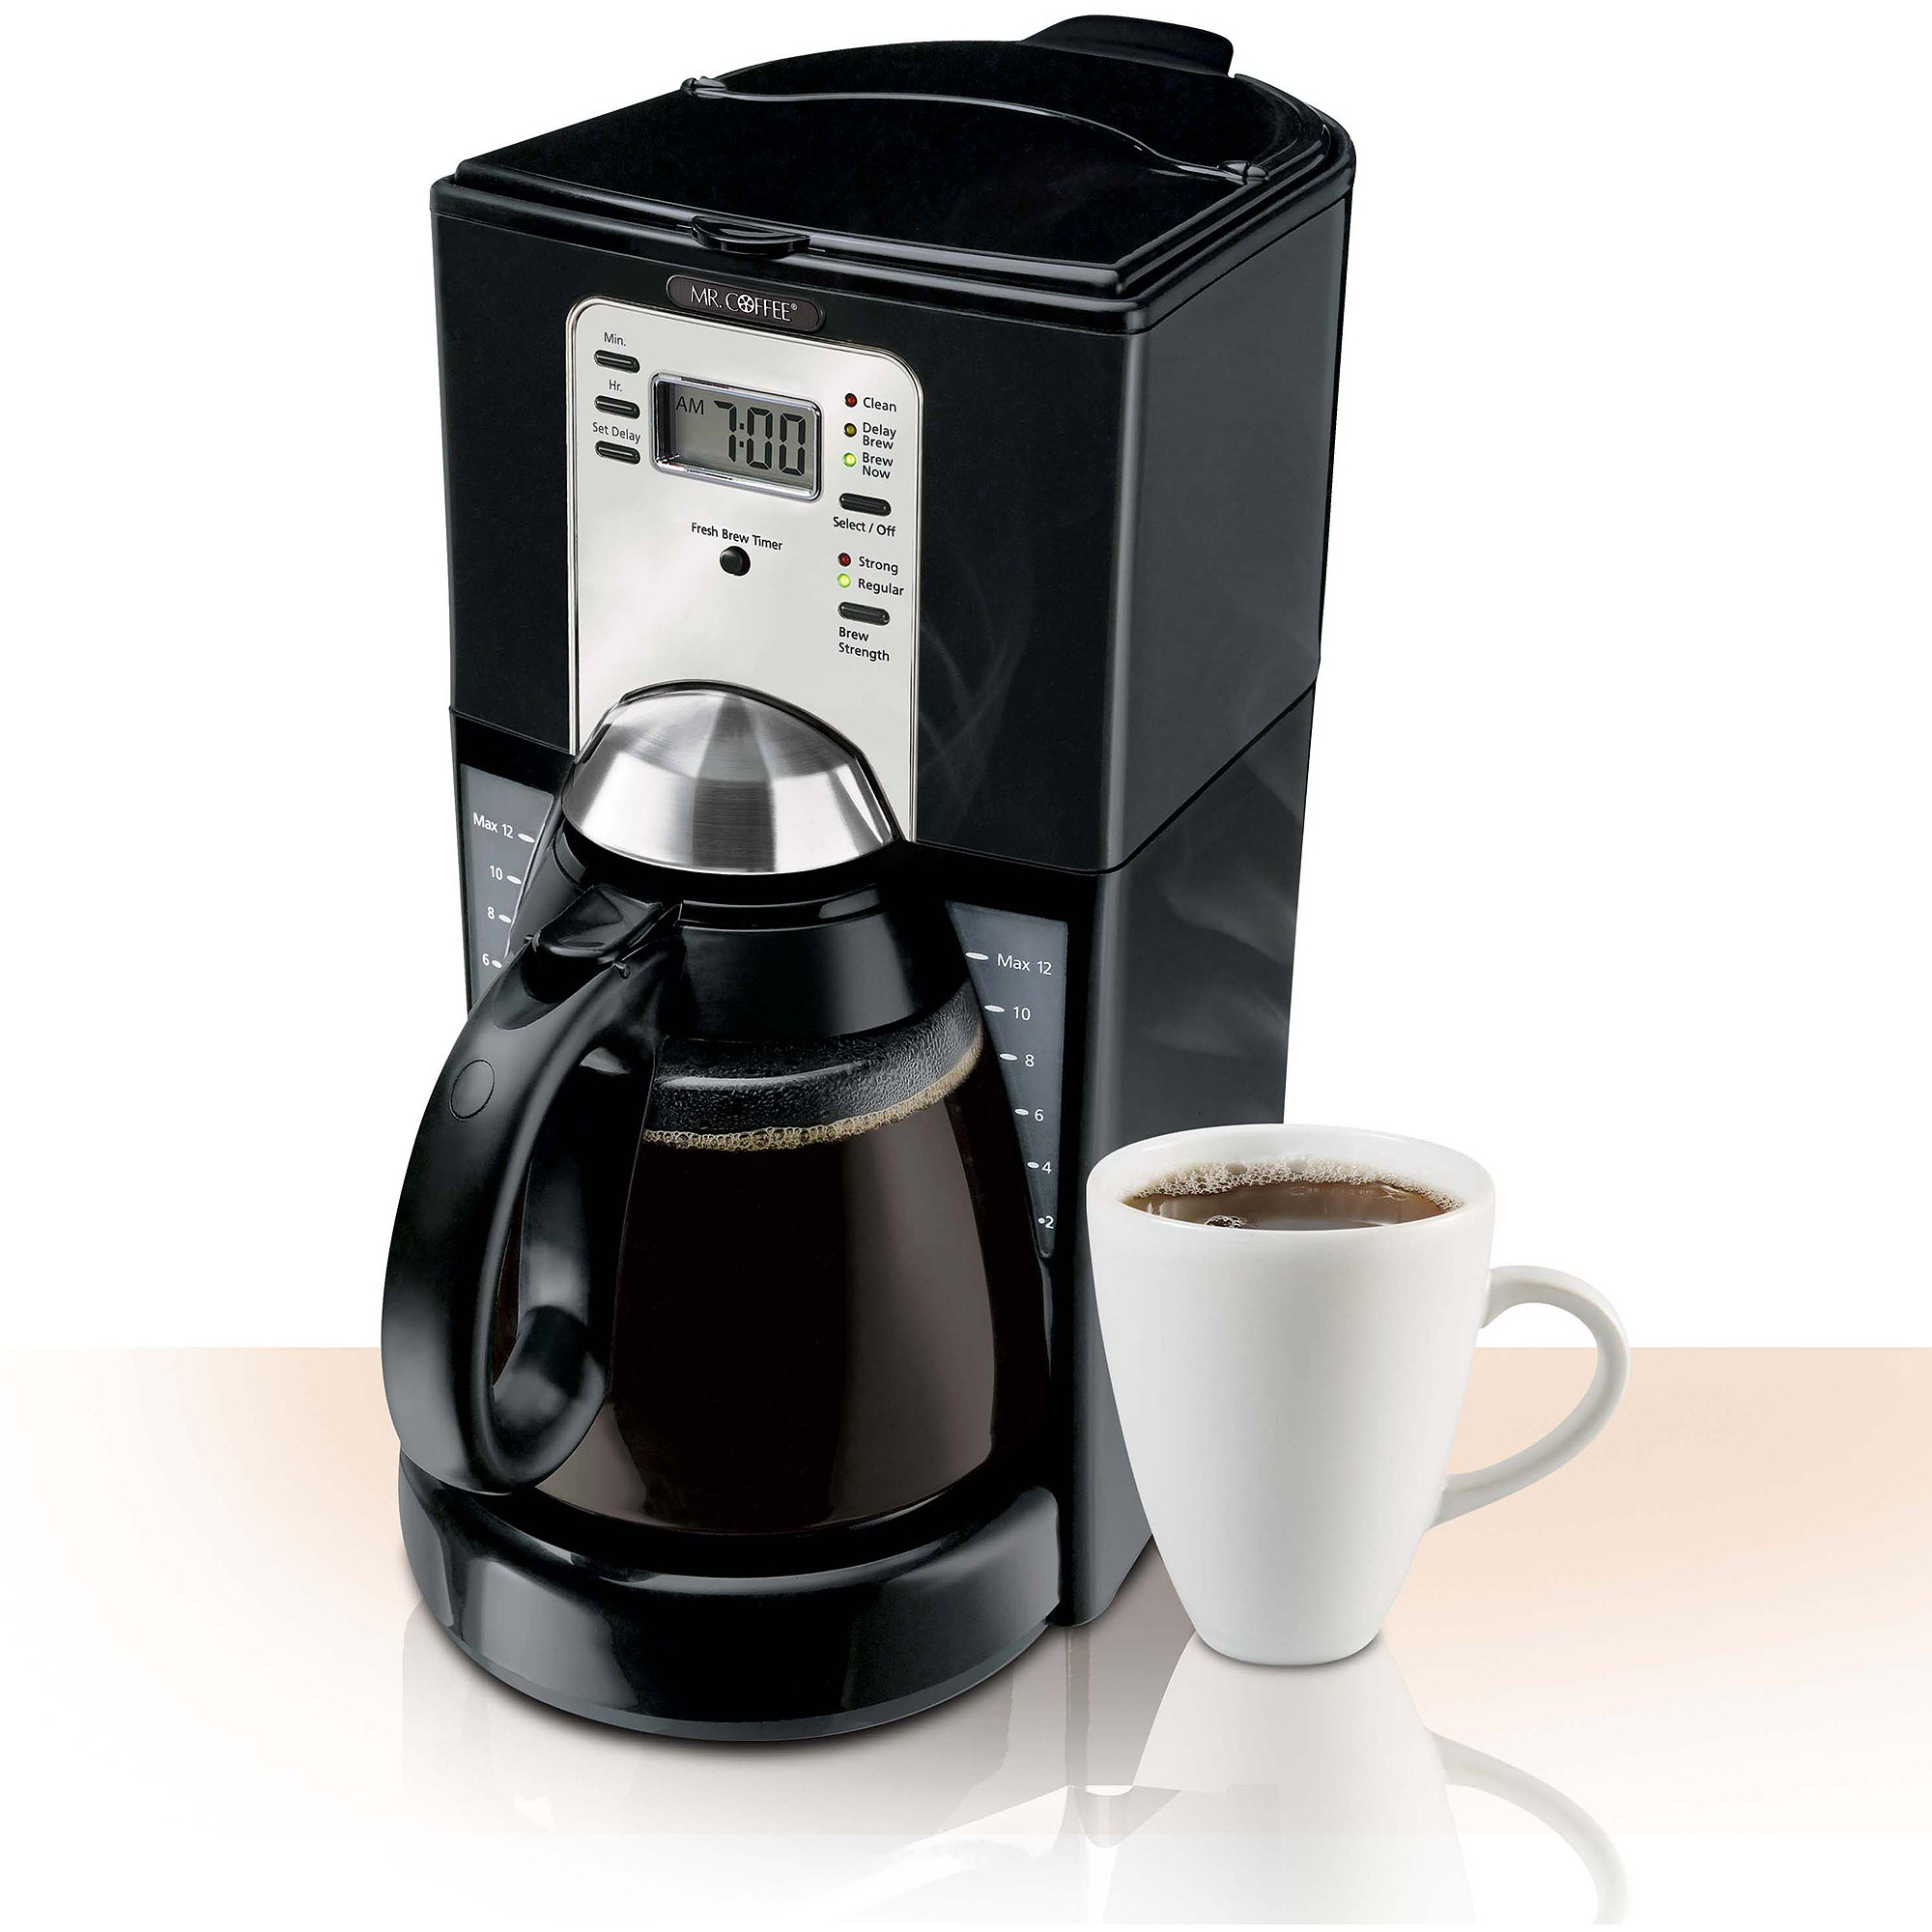 Mr Coffee Maker 4 Cup : Mr. Coffee Simple Brew 4-Cup Switch Coffee Maker, DR Series - Walmart.com